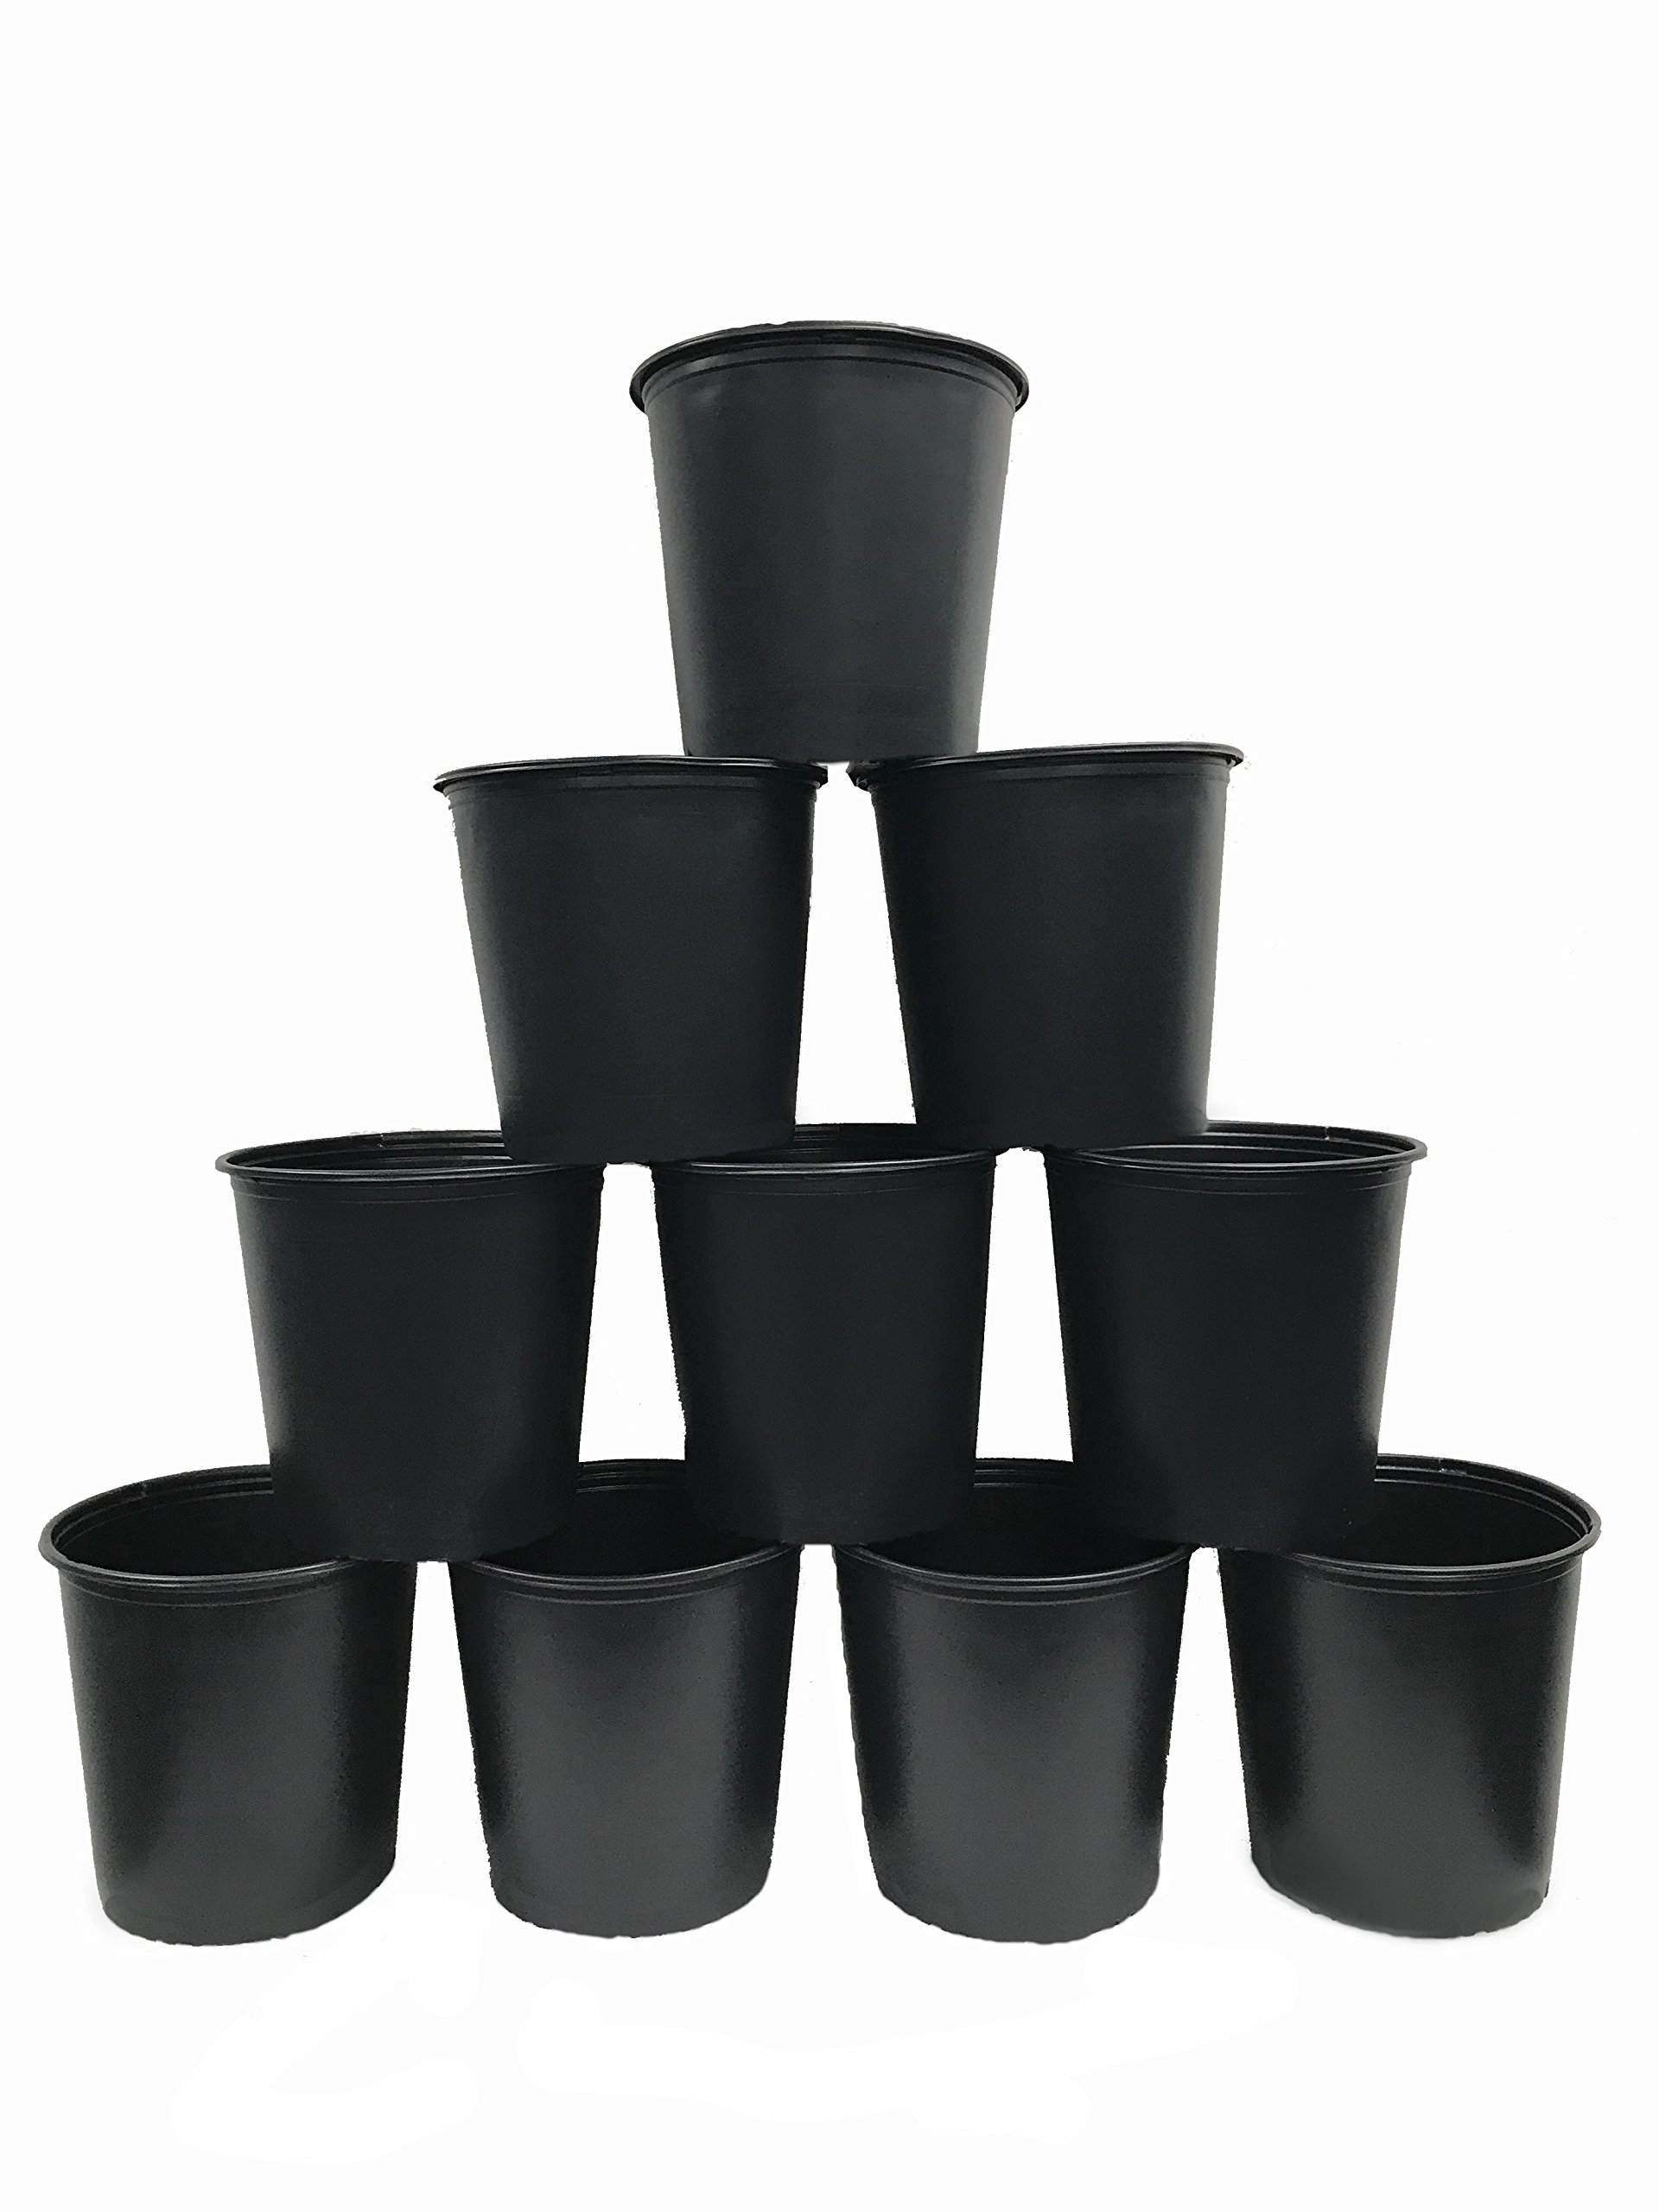 Viagrow VHPP500-10 5 gallon Round Nursery Pot, 10 Pack